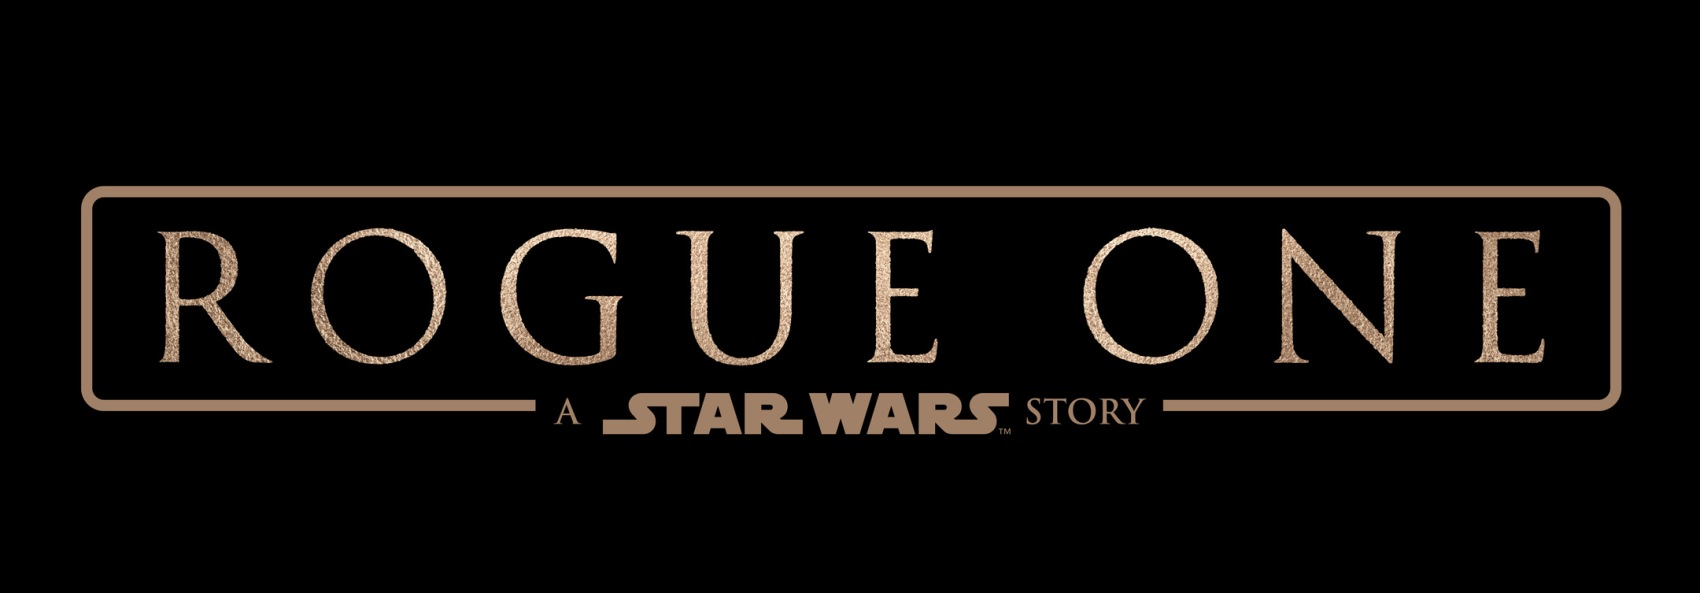 rogue-one-title-treatment 1700-593